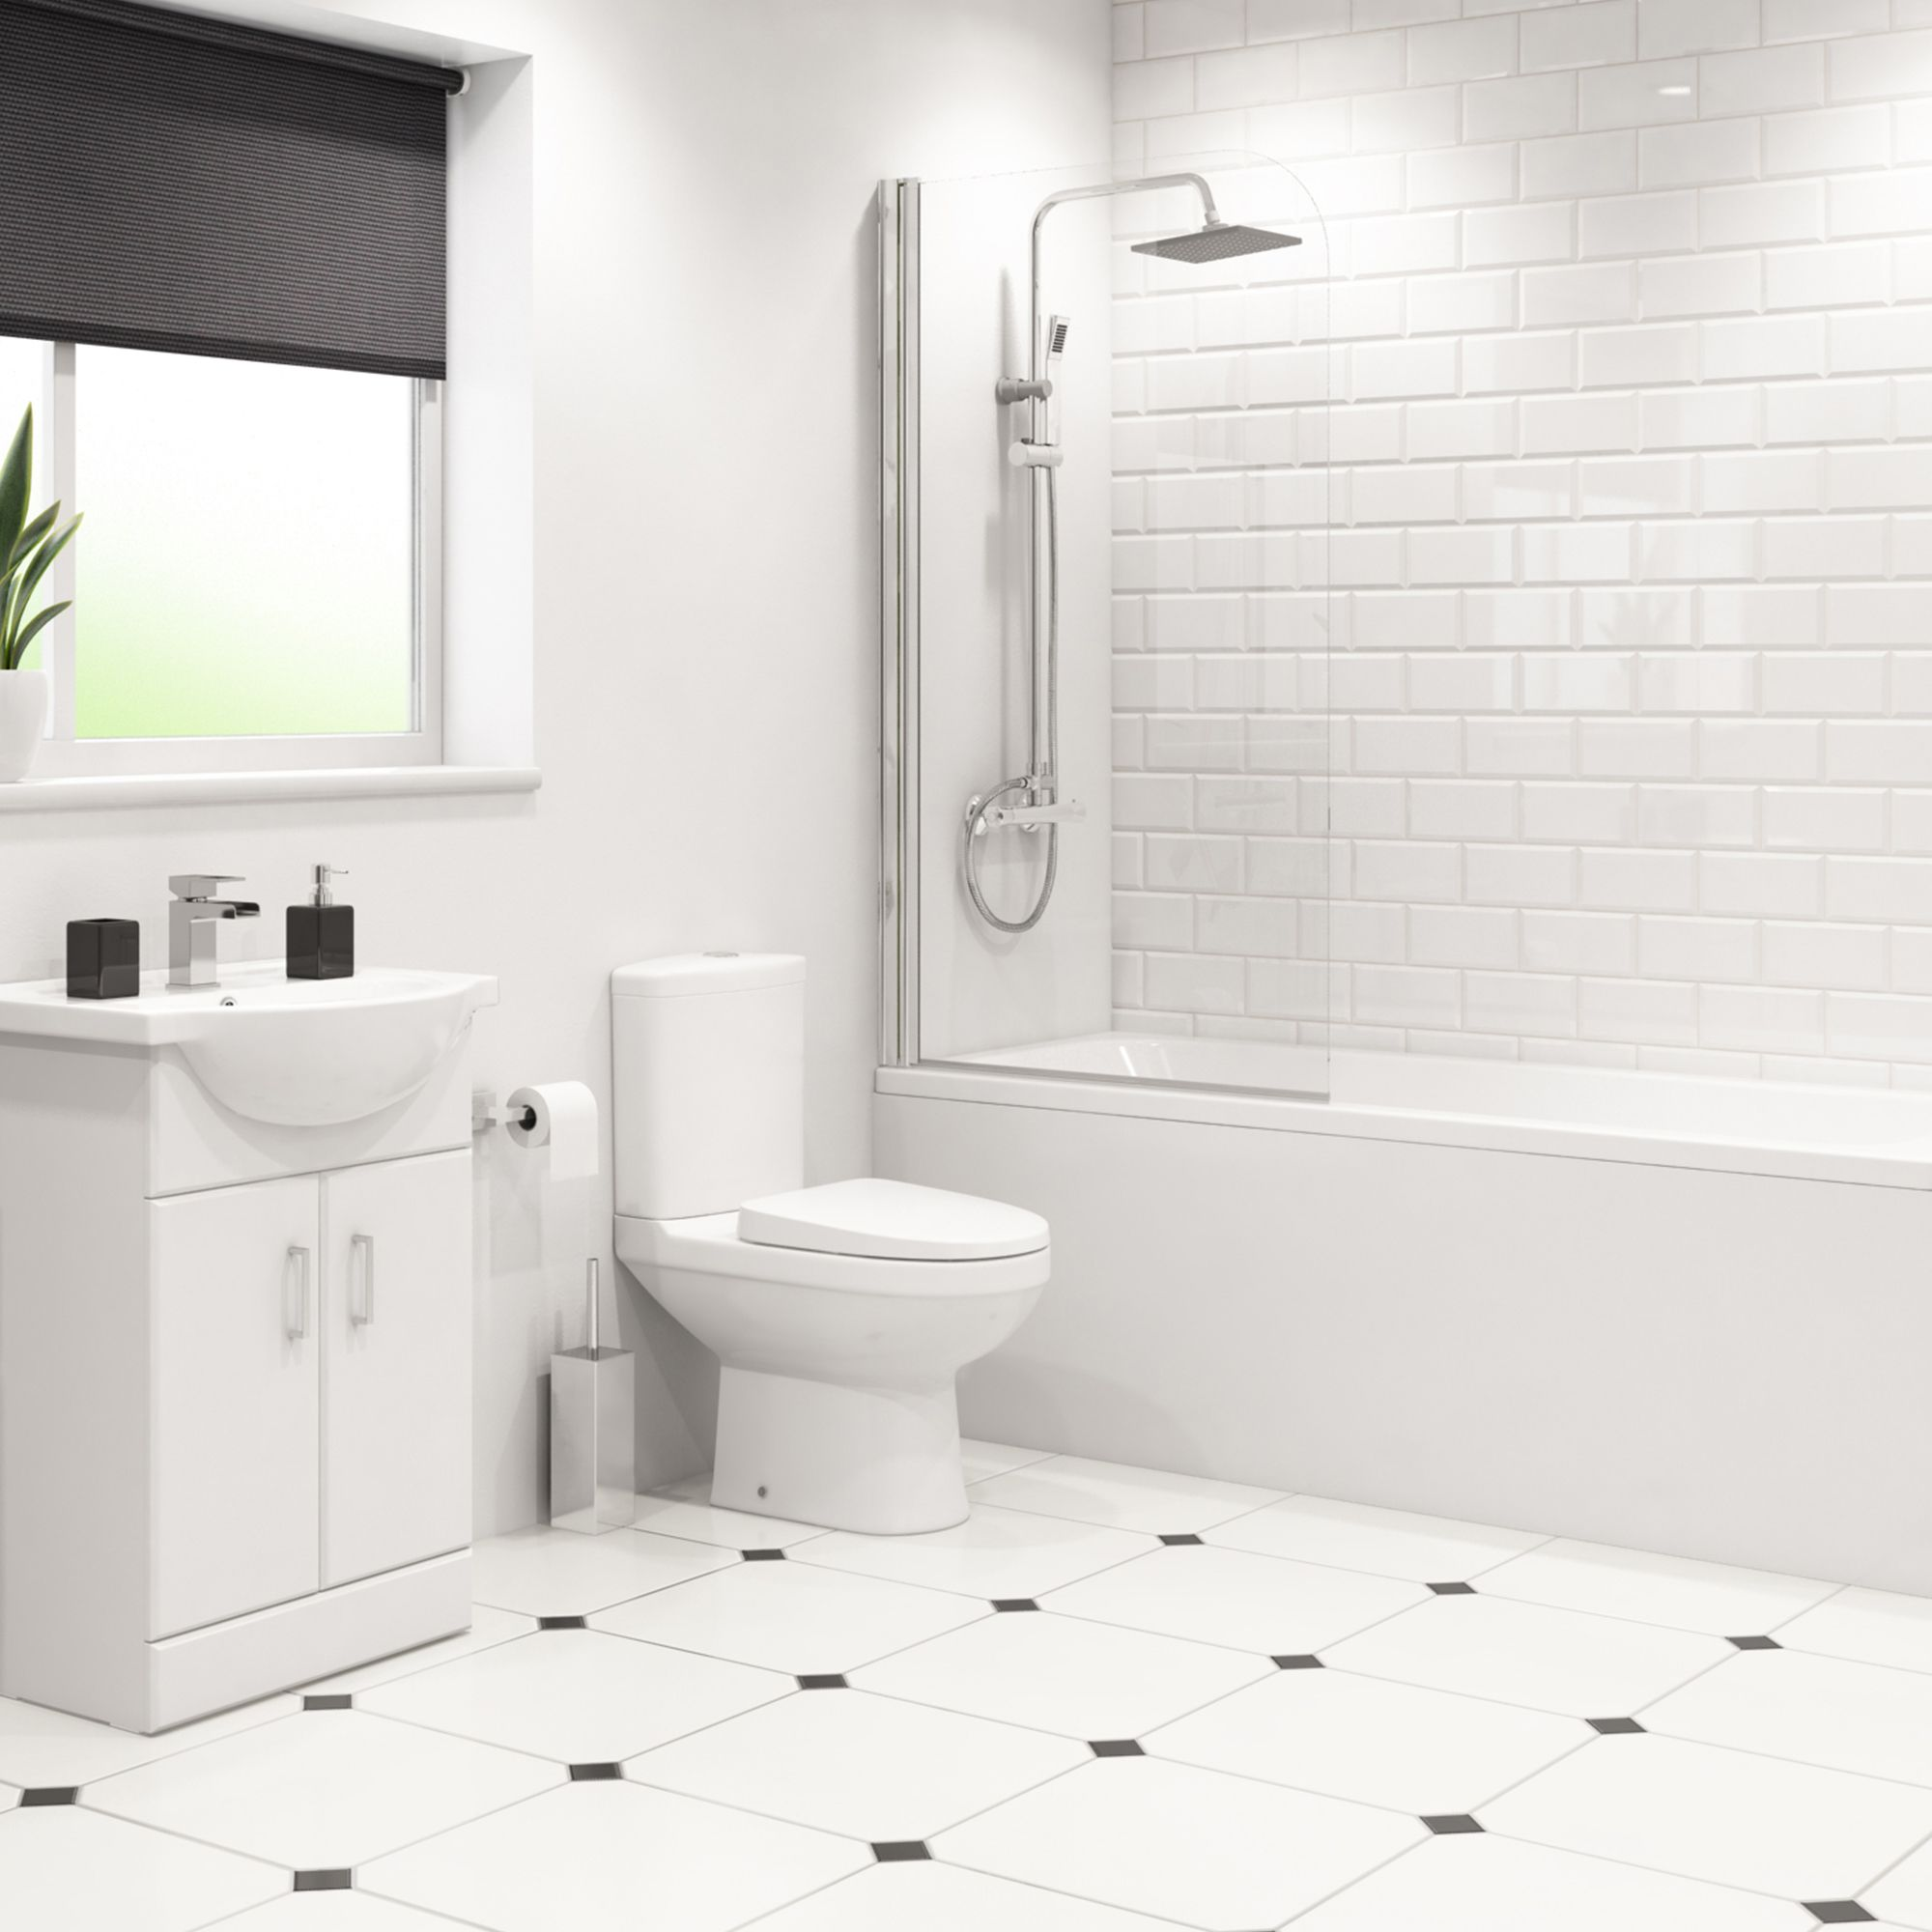 best images about bathrooms on pinterest changue bathrooms